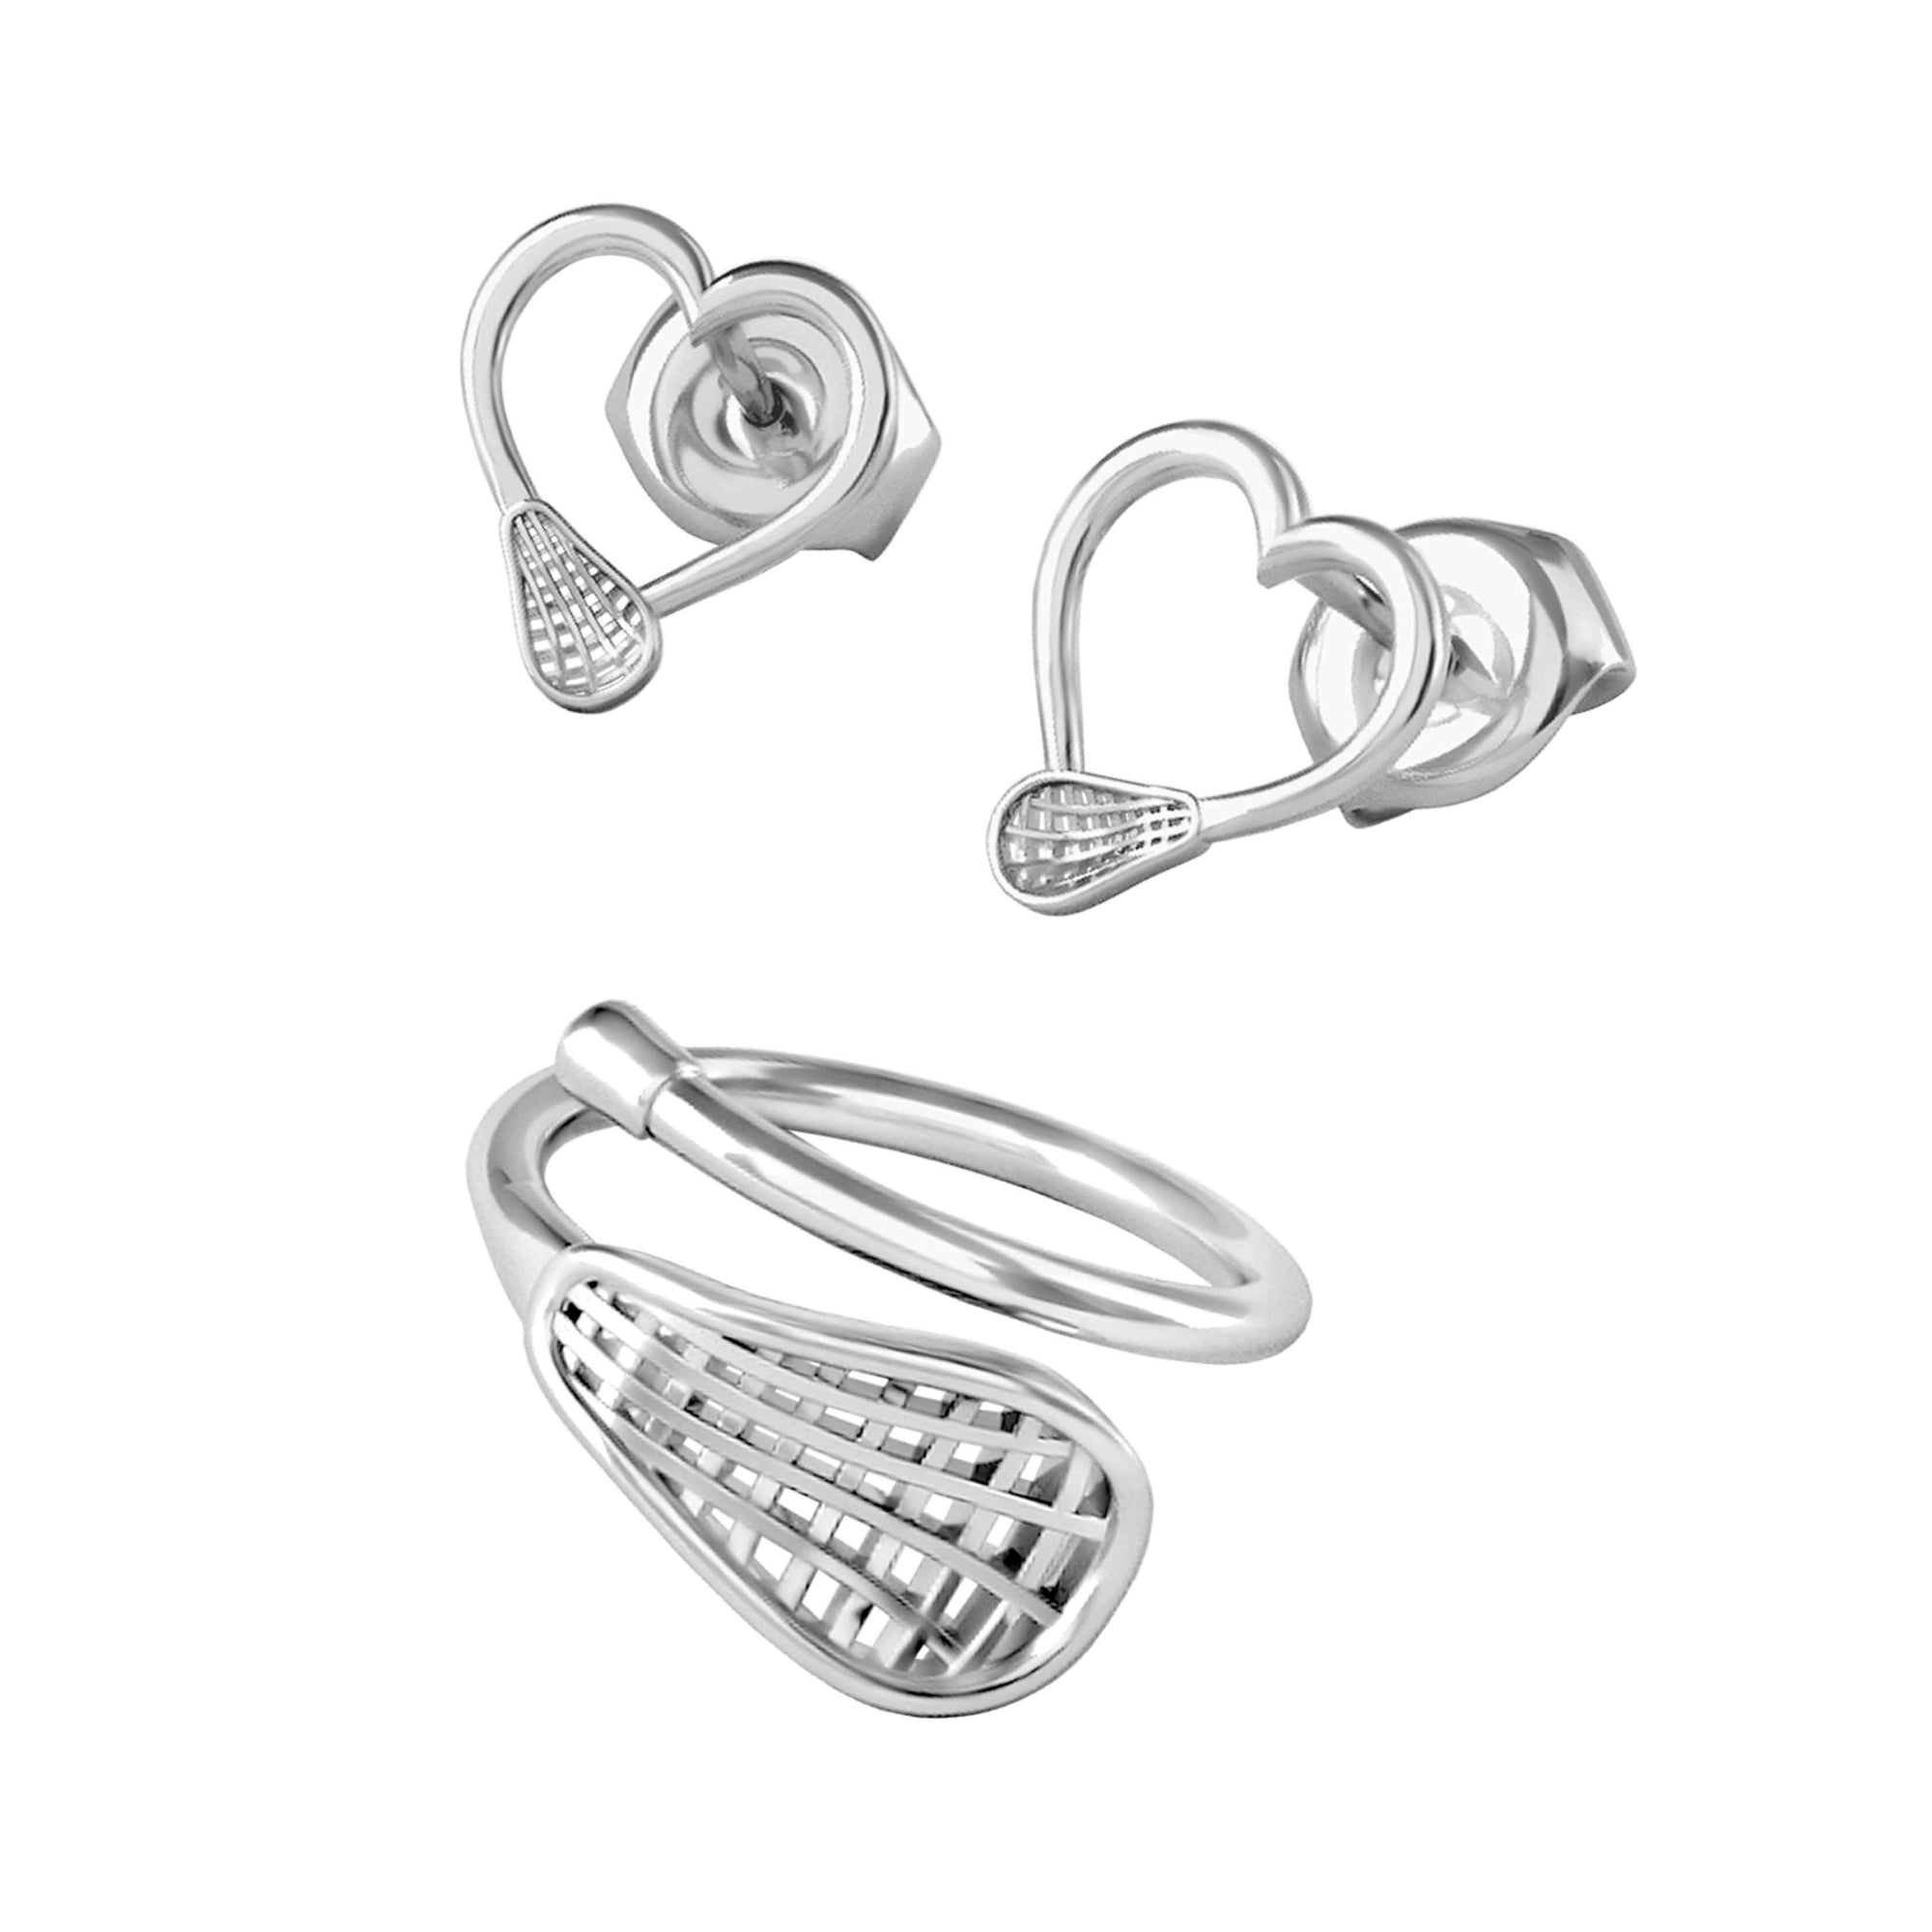 Lacrosse Ring + Heart Earrings